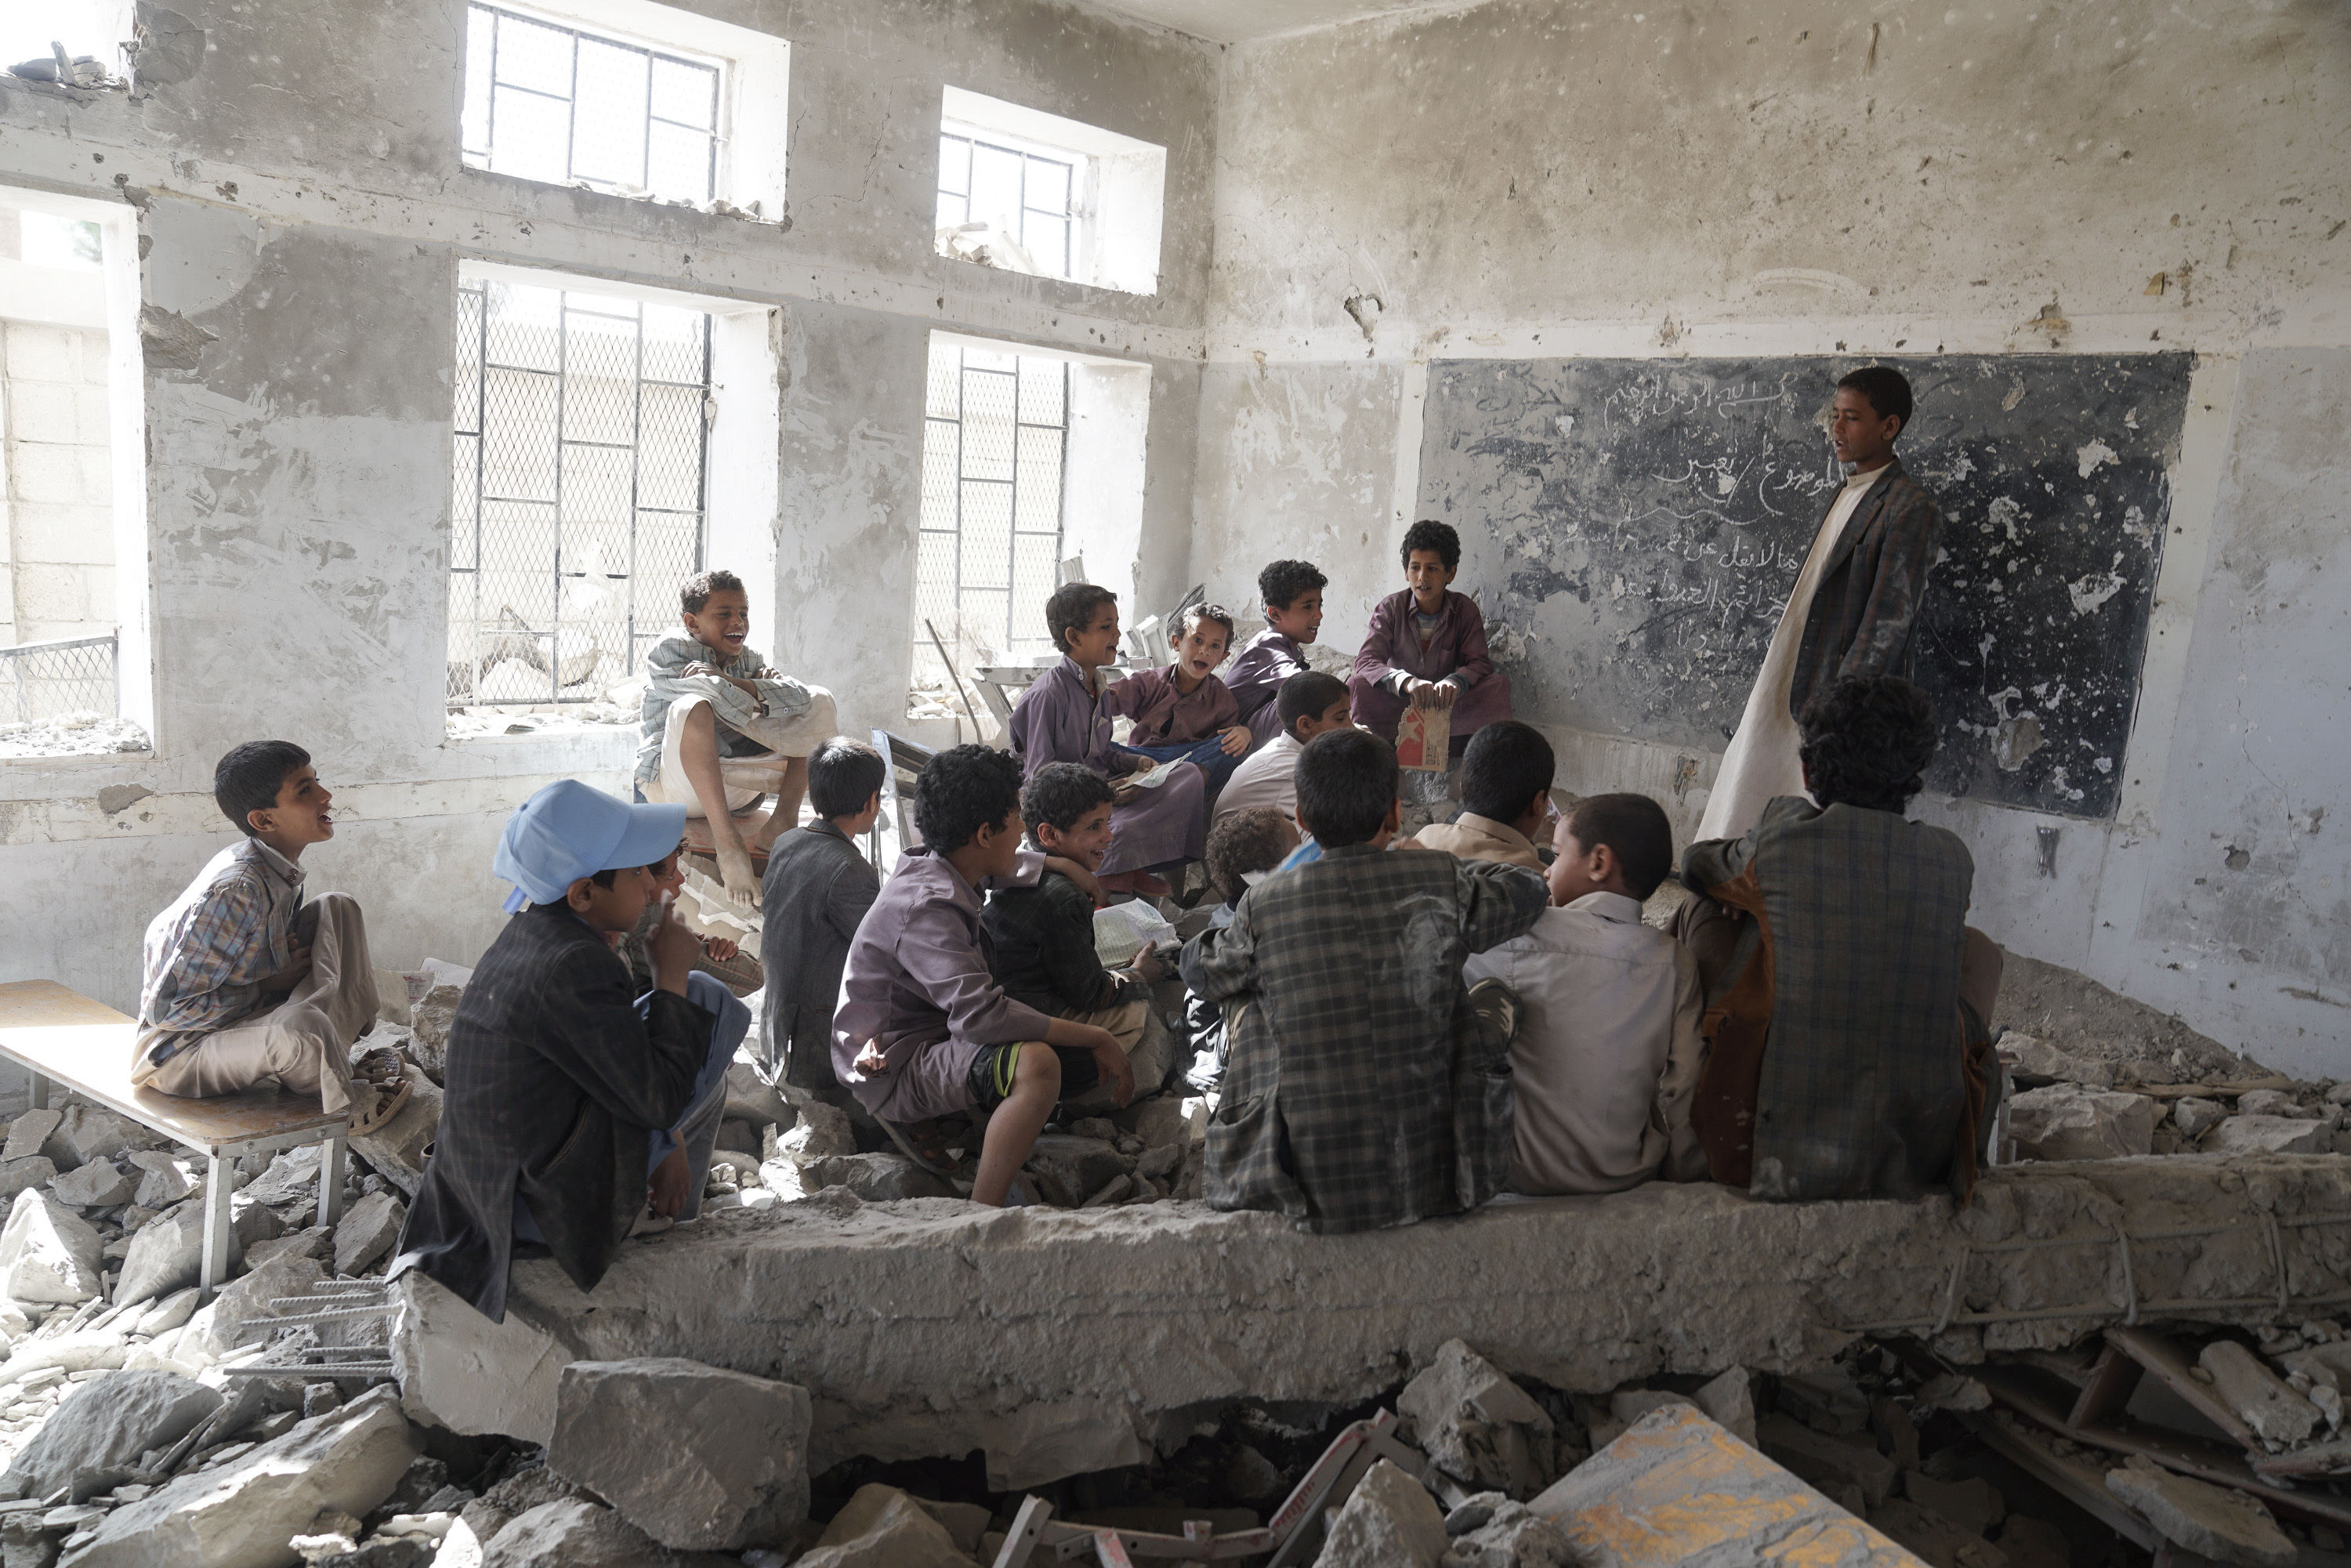 Children sit in a former classroom in the Aal Okab school in Yemen which was bombed out in 2015 (Giles Clarke for UN OCHA / Getty Images)